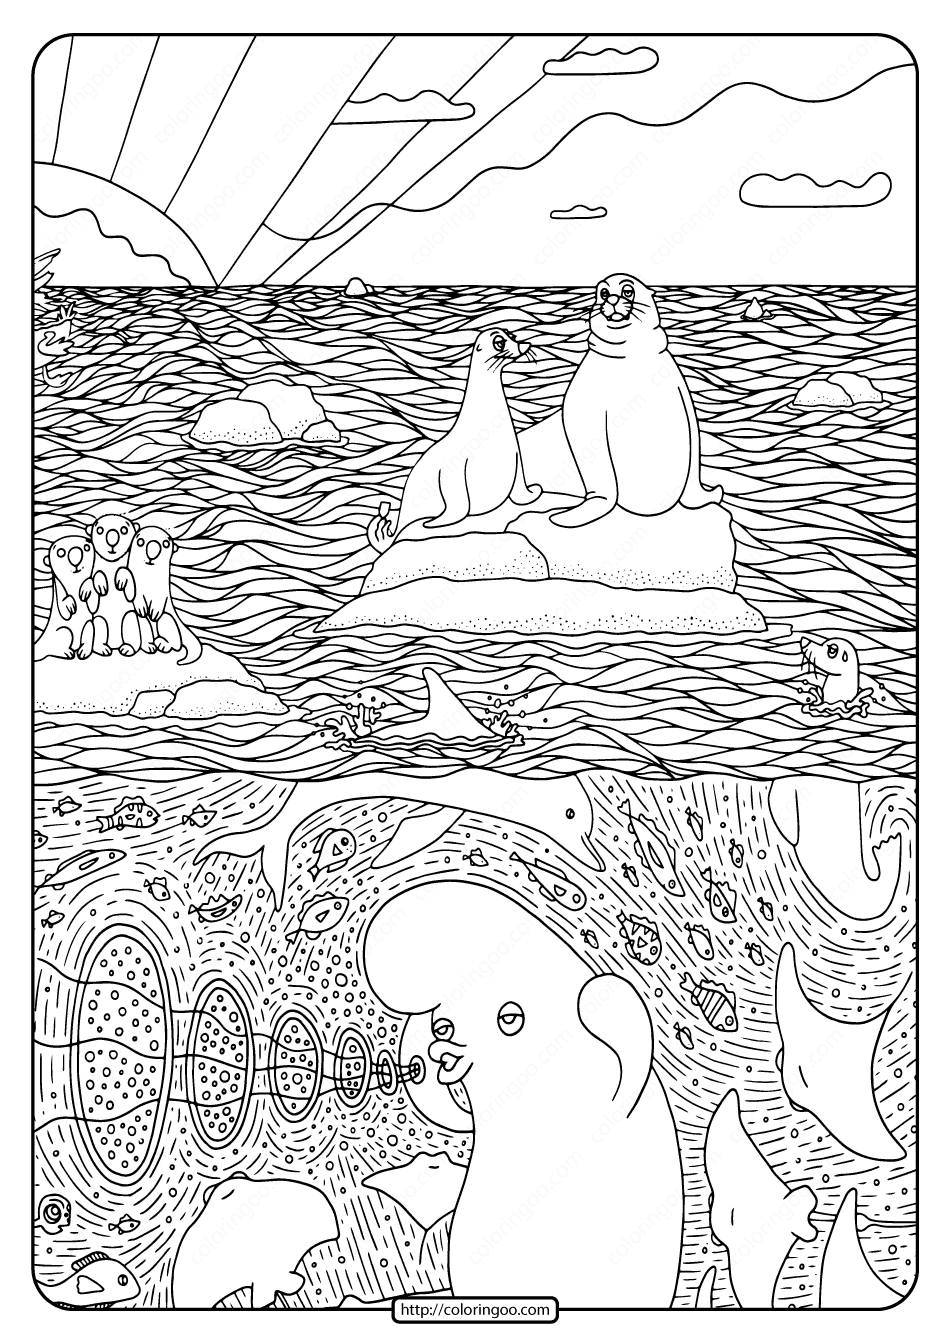 Printable Disney Finding Dory Pdf Coloring Page-02